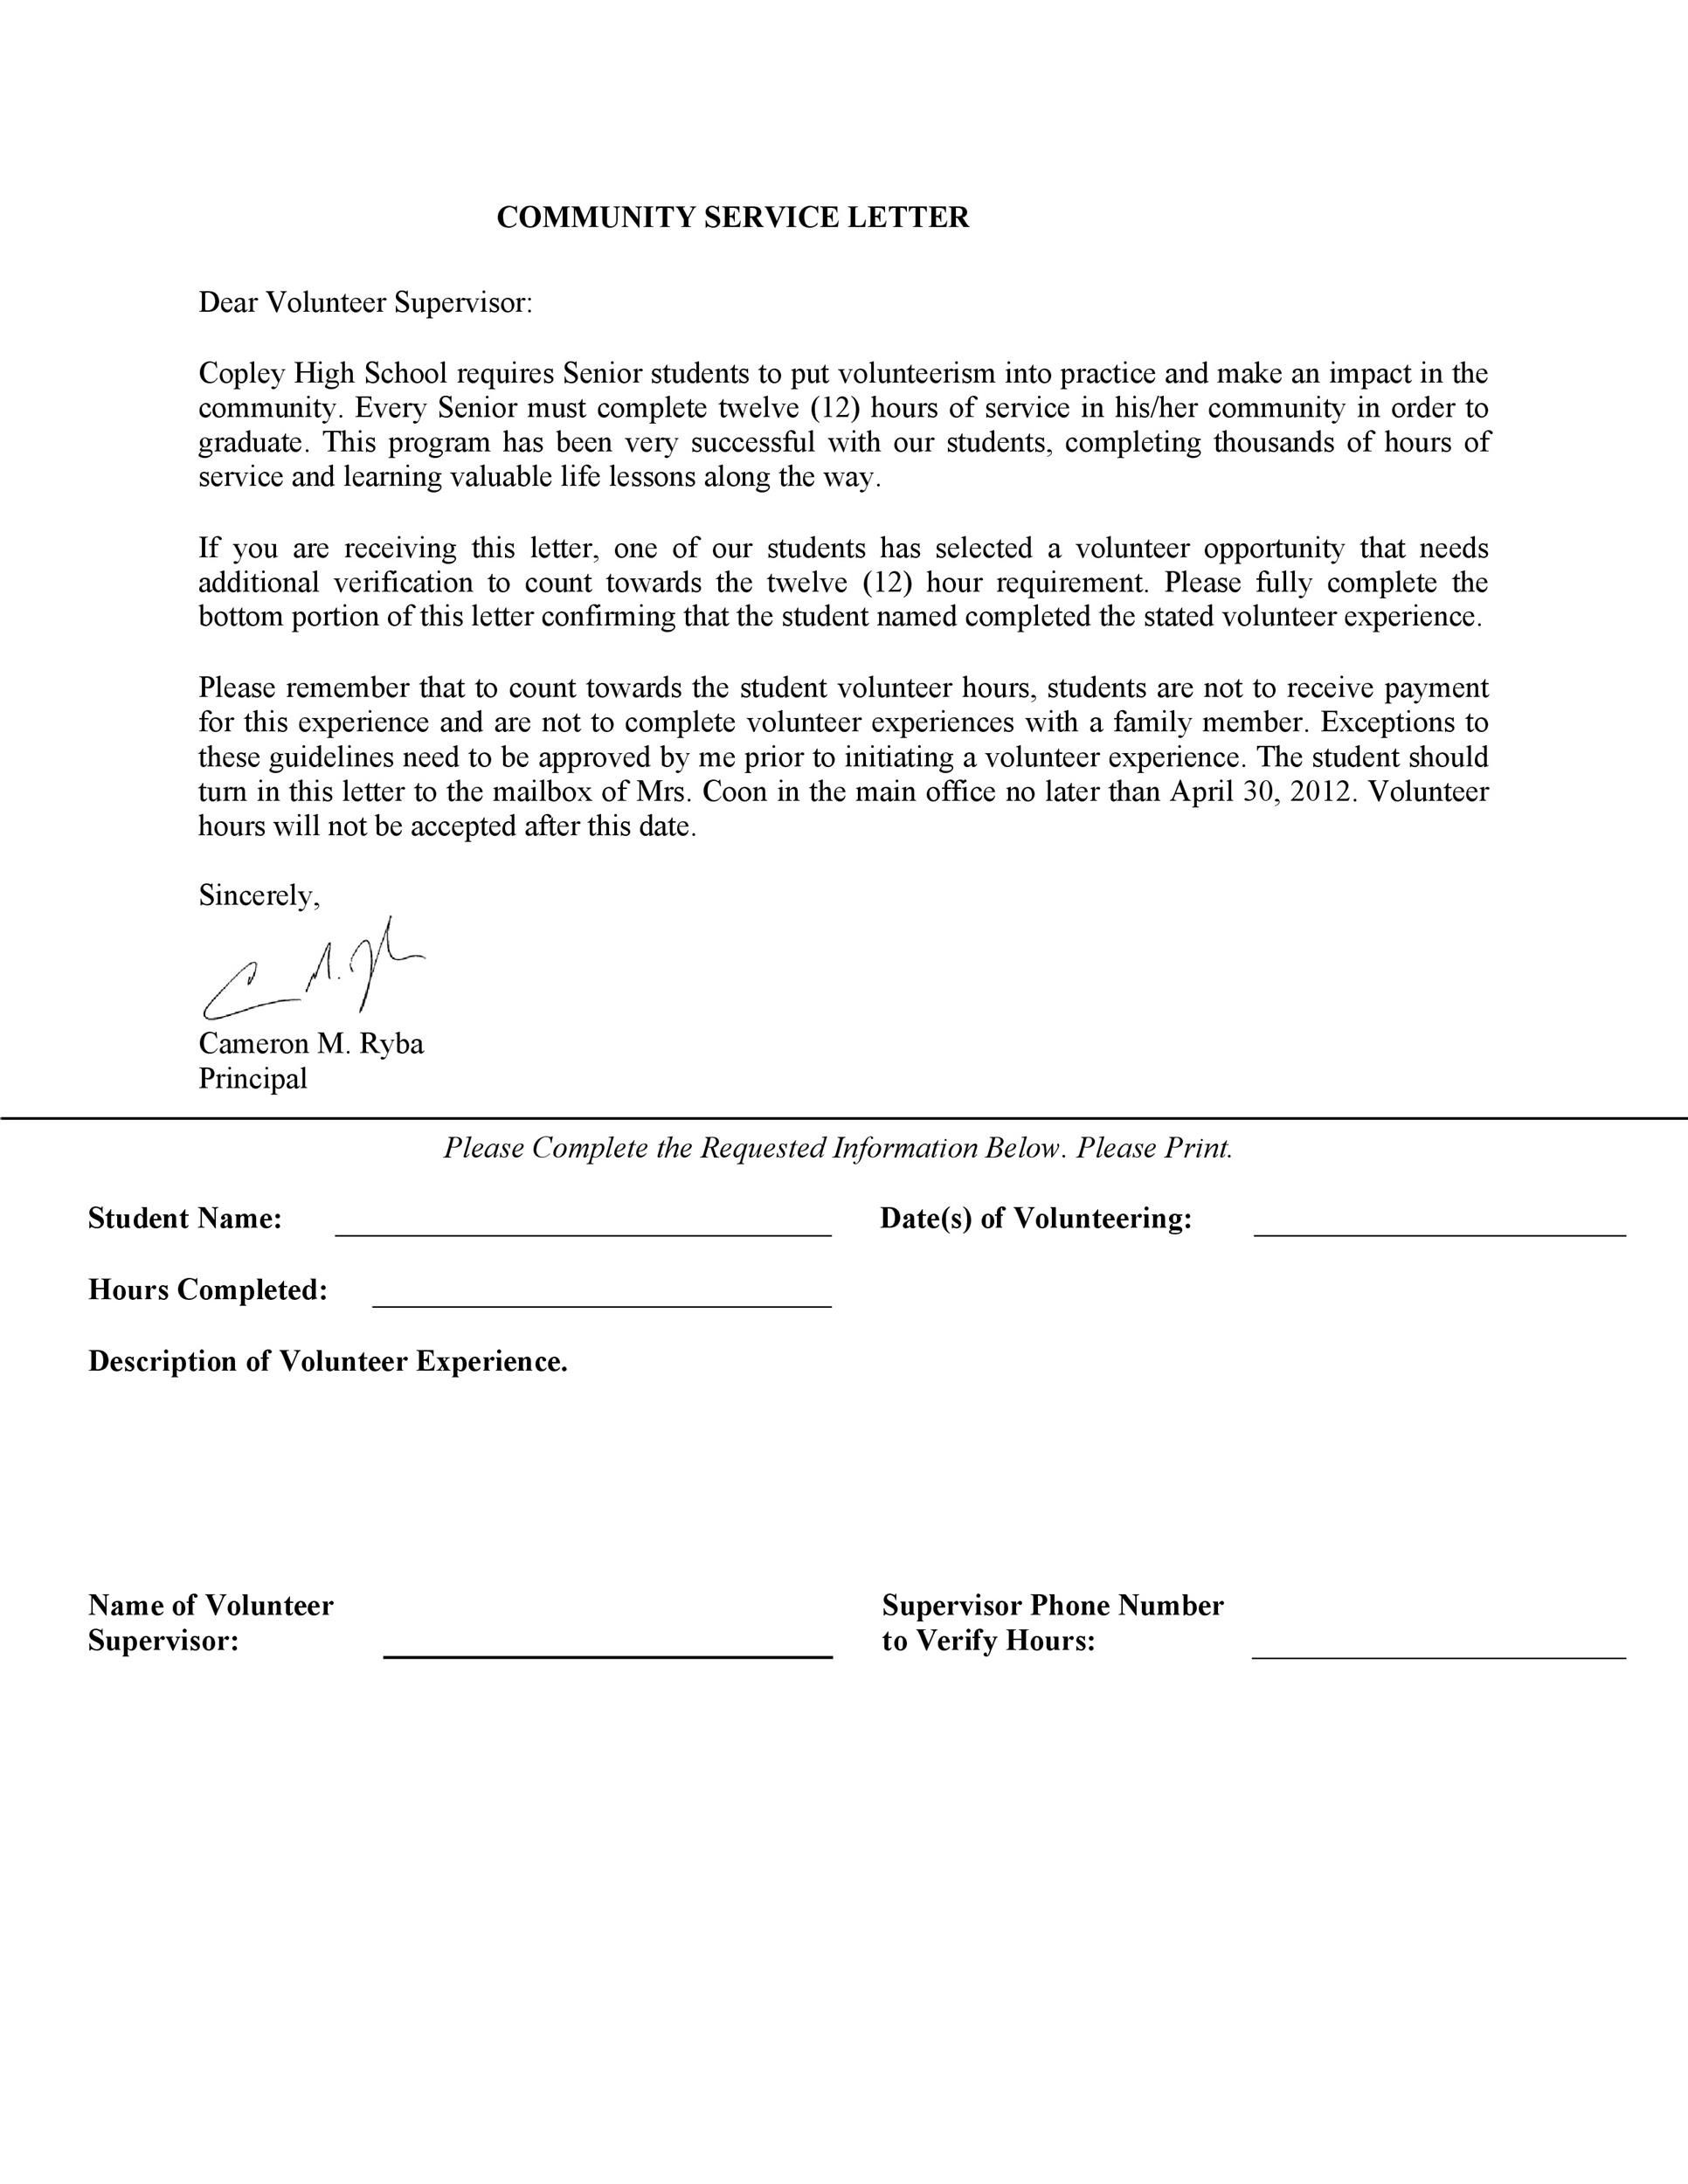 Community Service Letter Format from www.addictionary.org